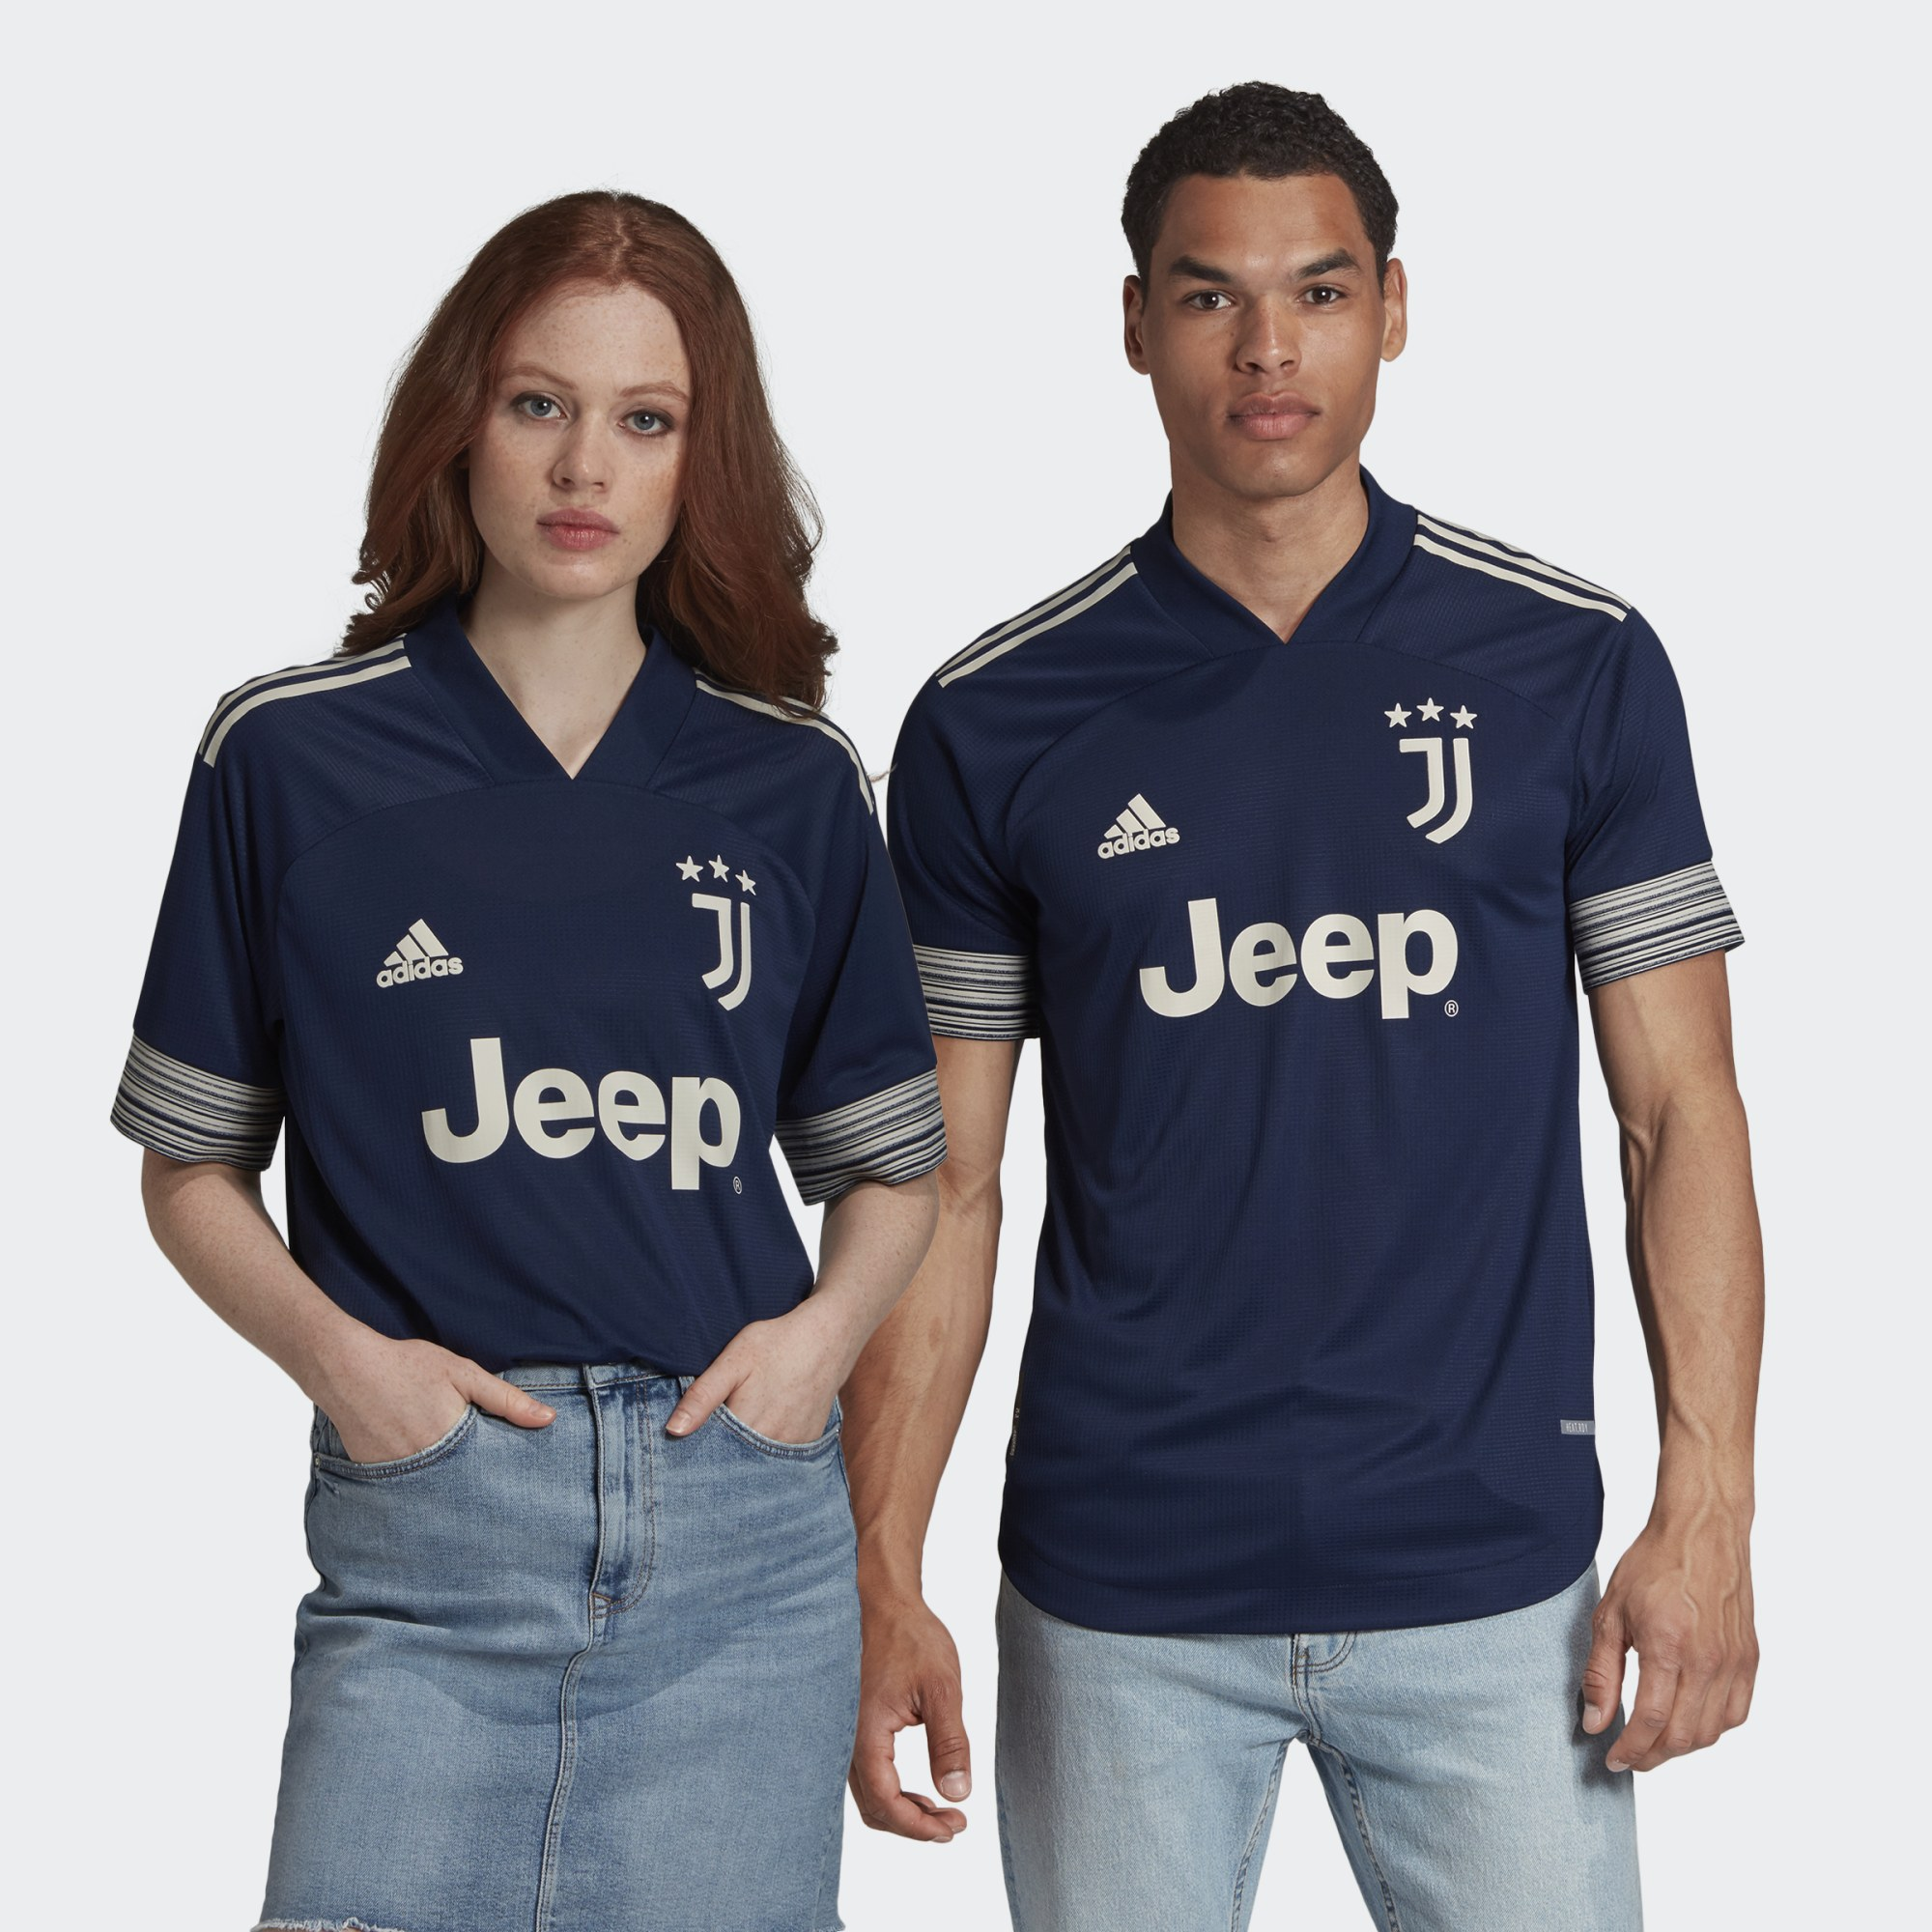 Juventus 2020 21 Adidas Away Kit 20 21 Kits Football Shirt Blog